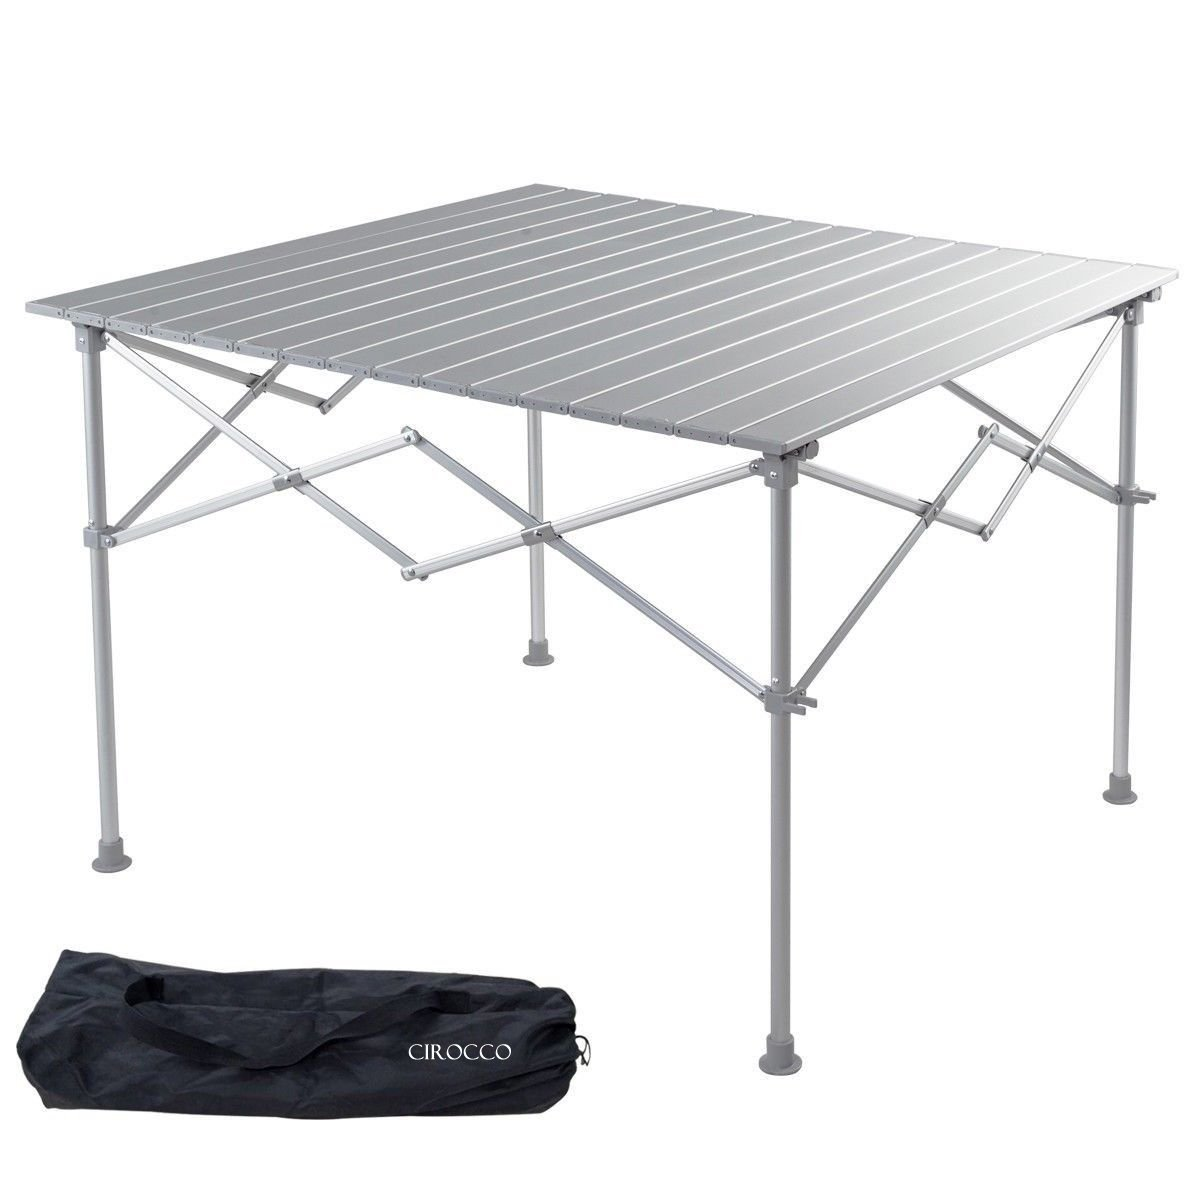 Aluminum Alloy Portable Folding Indoor Outdoor Camping BBQ Picnic Table Desk with Roll up Top | Heavy Duty Compact Lightweight Furniture for Patio Garden Party Backyard Beach Swimming Hiking Fishing